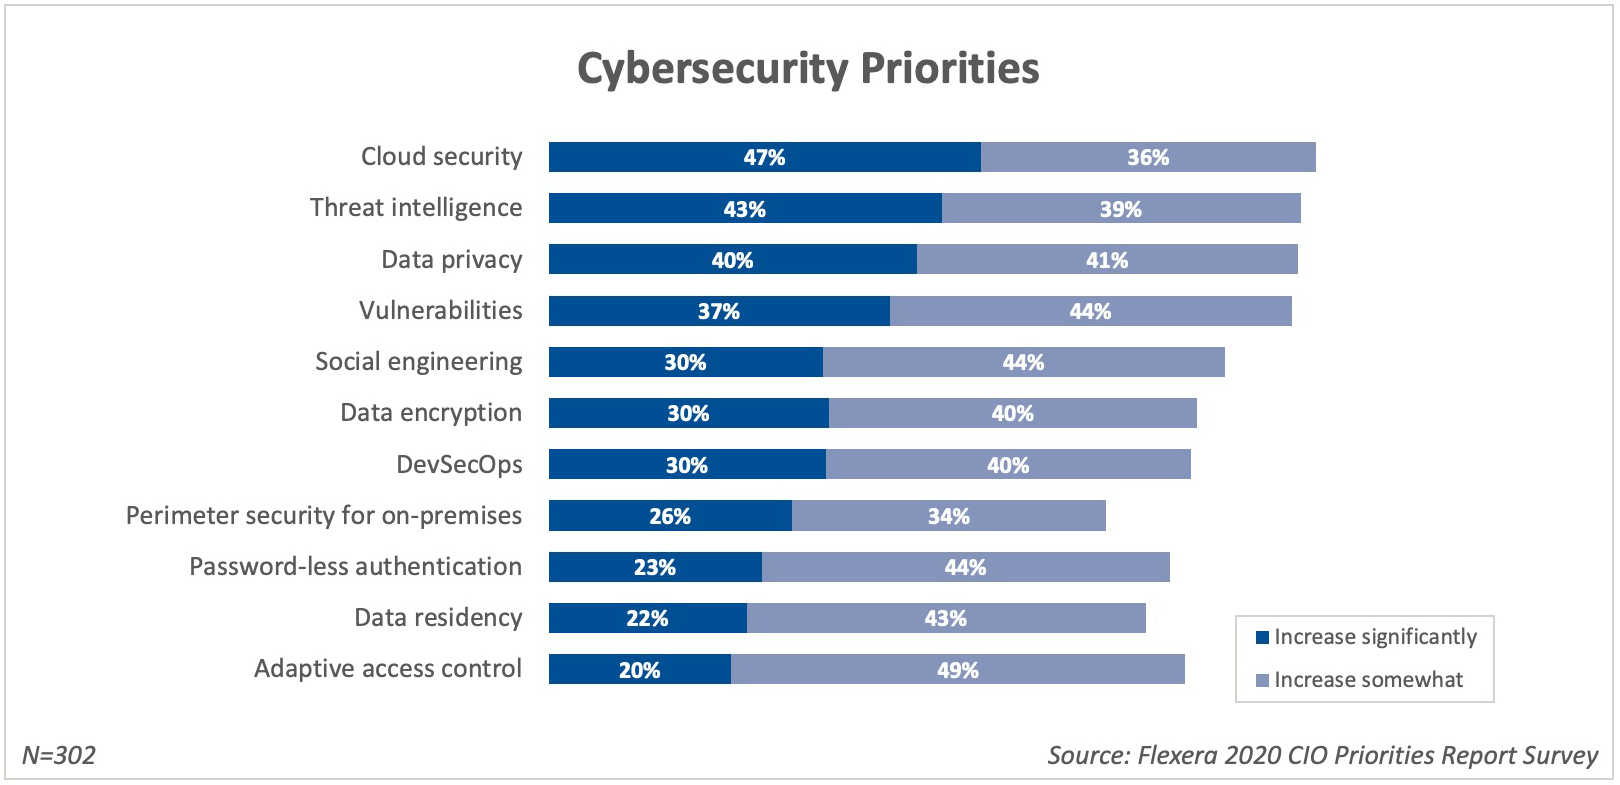 Cybersecurity Priorities